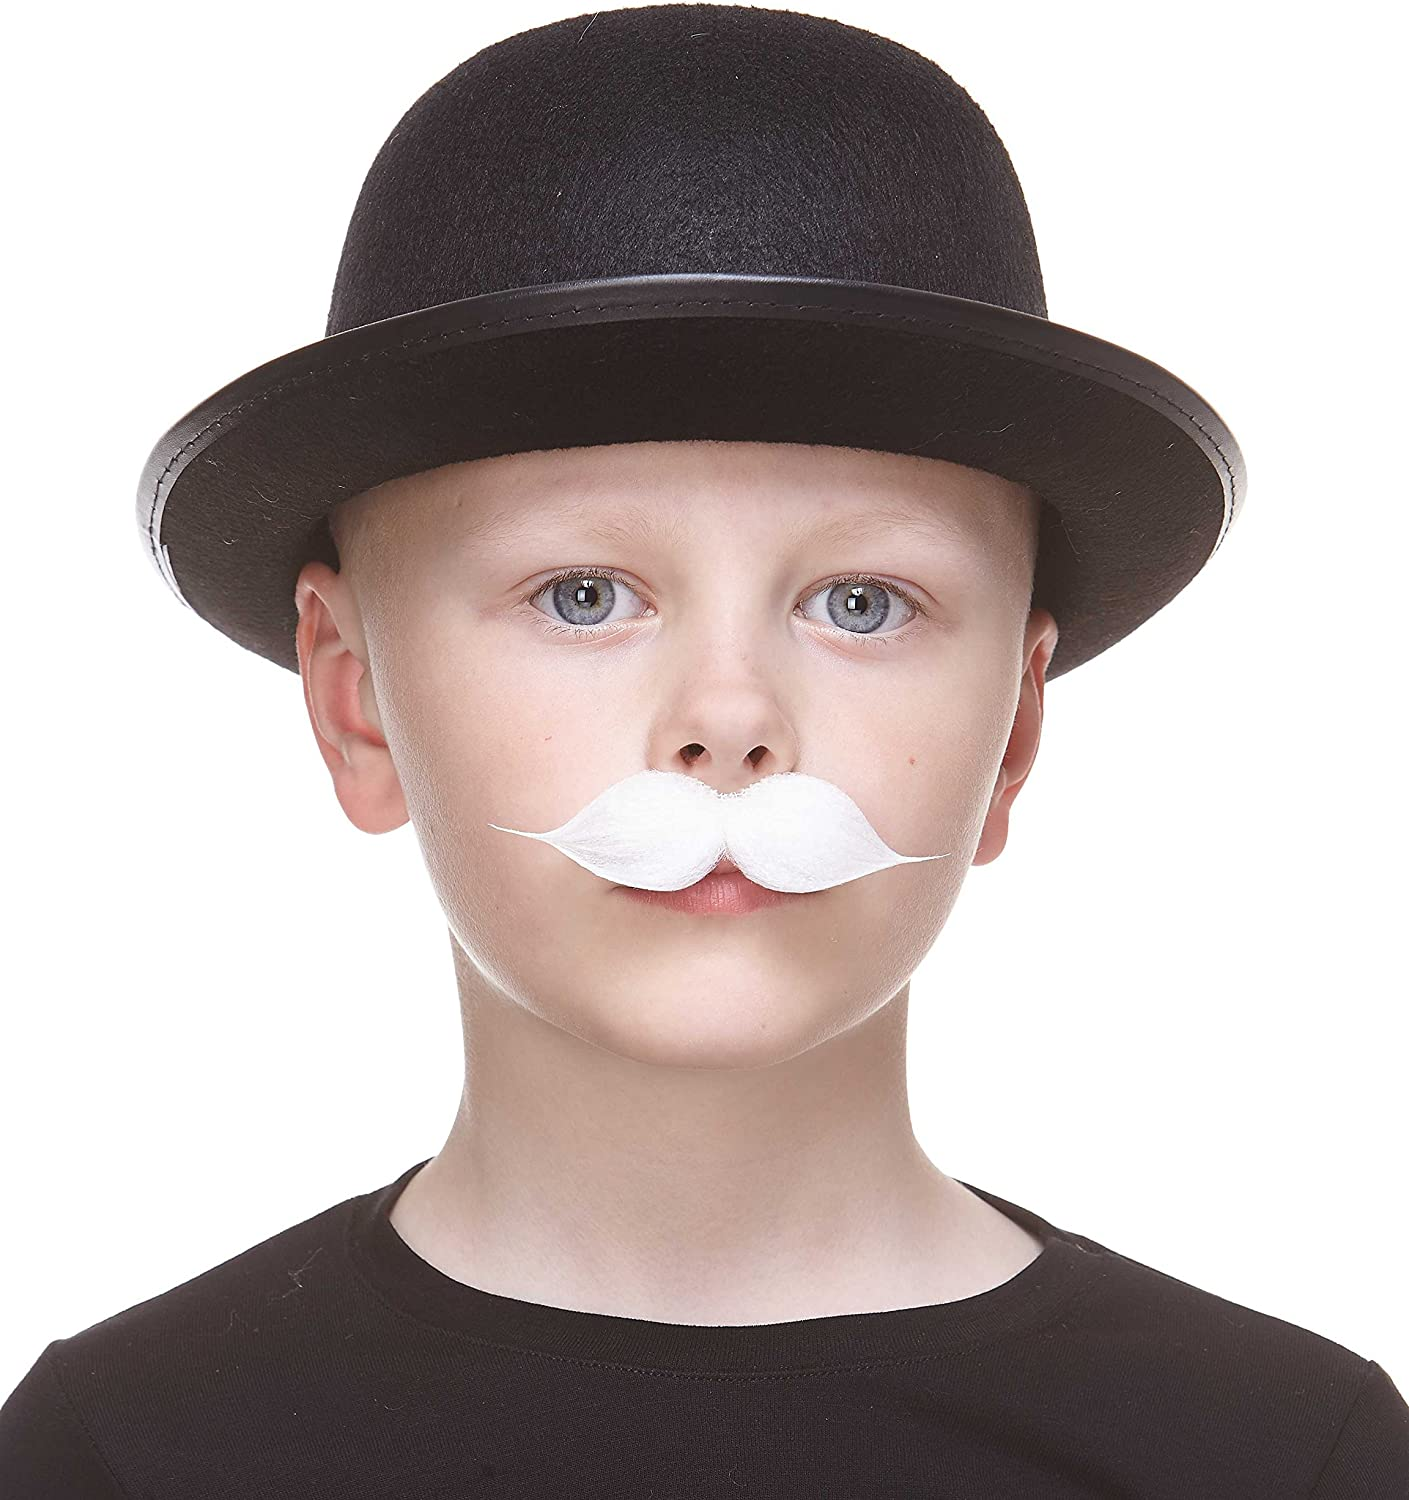 Novelty Small Puaro False Facial Hair Mustaches Fake Mustache Self Adhesive Costume Accessory for Kids